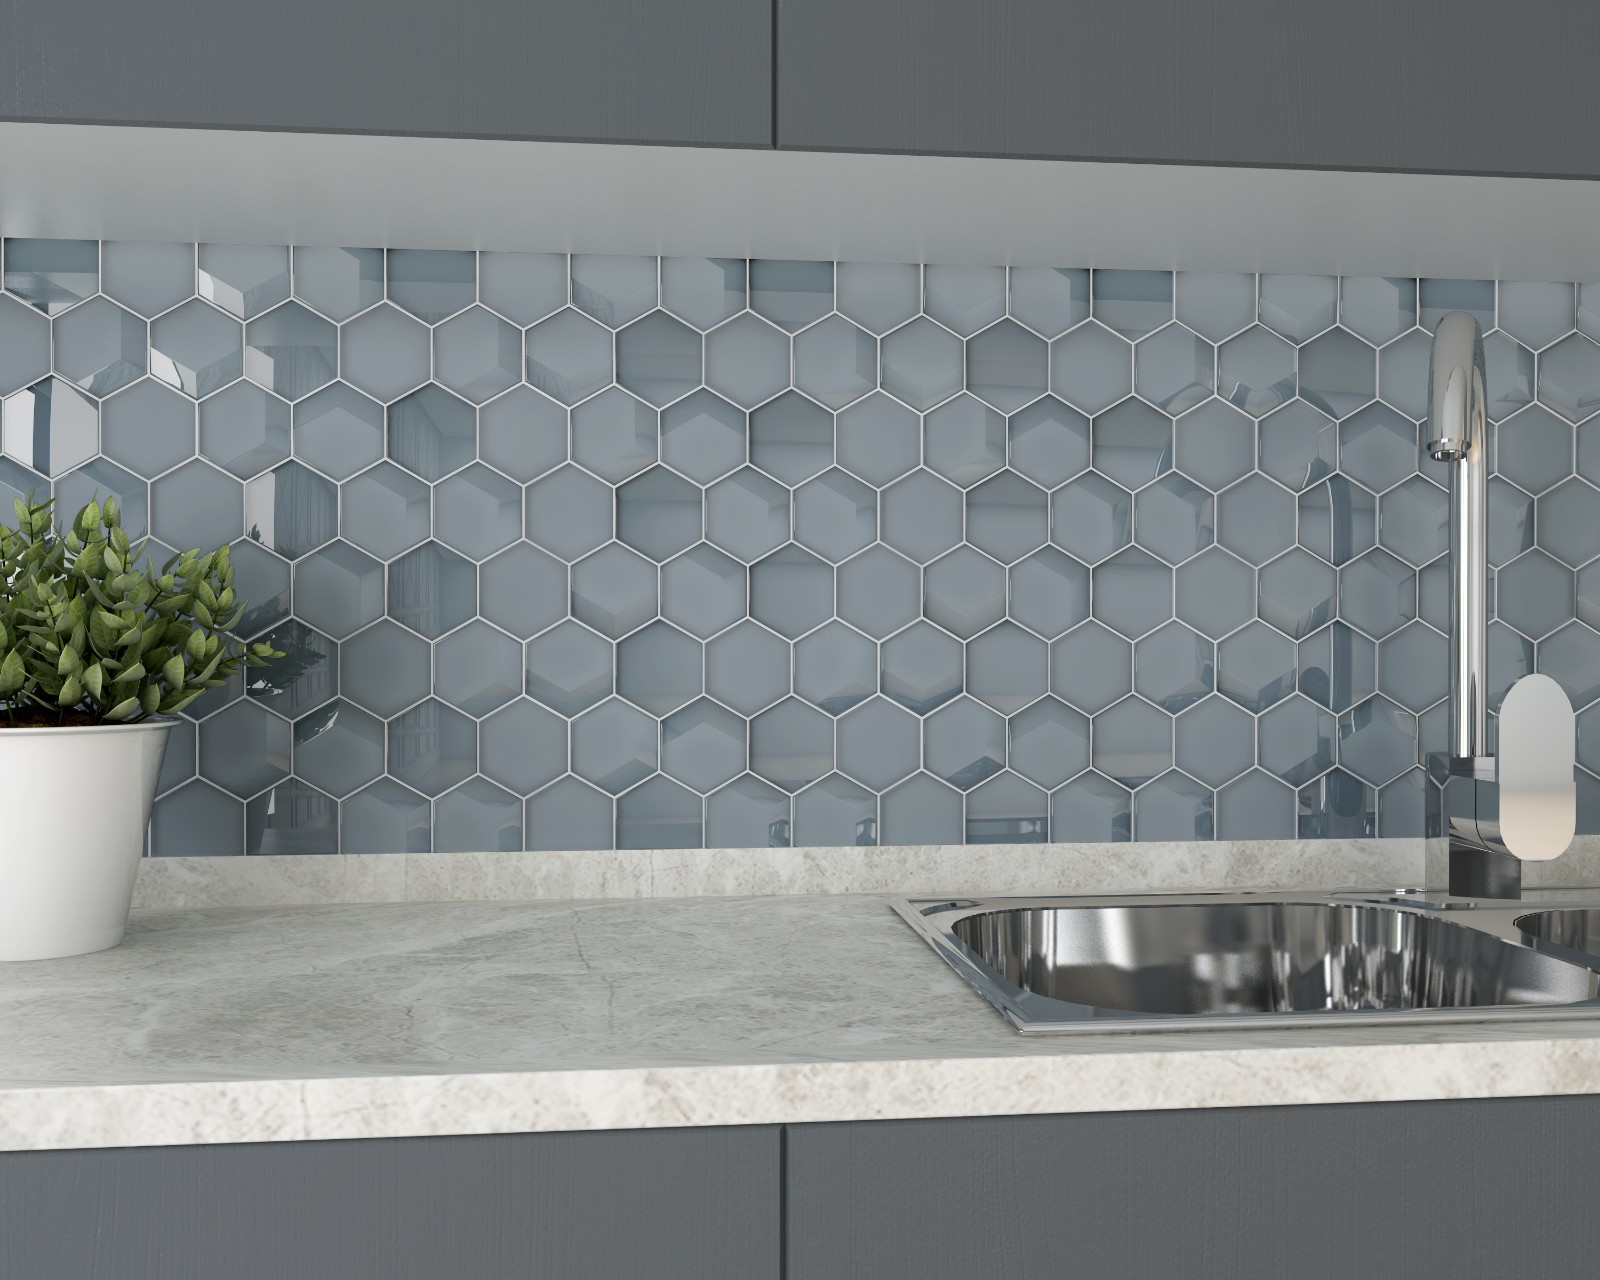 Heng Xing-Bevel Tile Supplier, Iridescent Glass Tile | Heng Xing-5